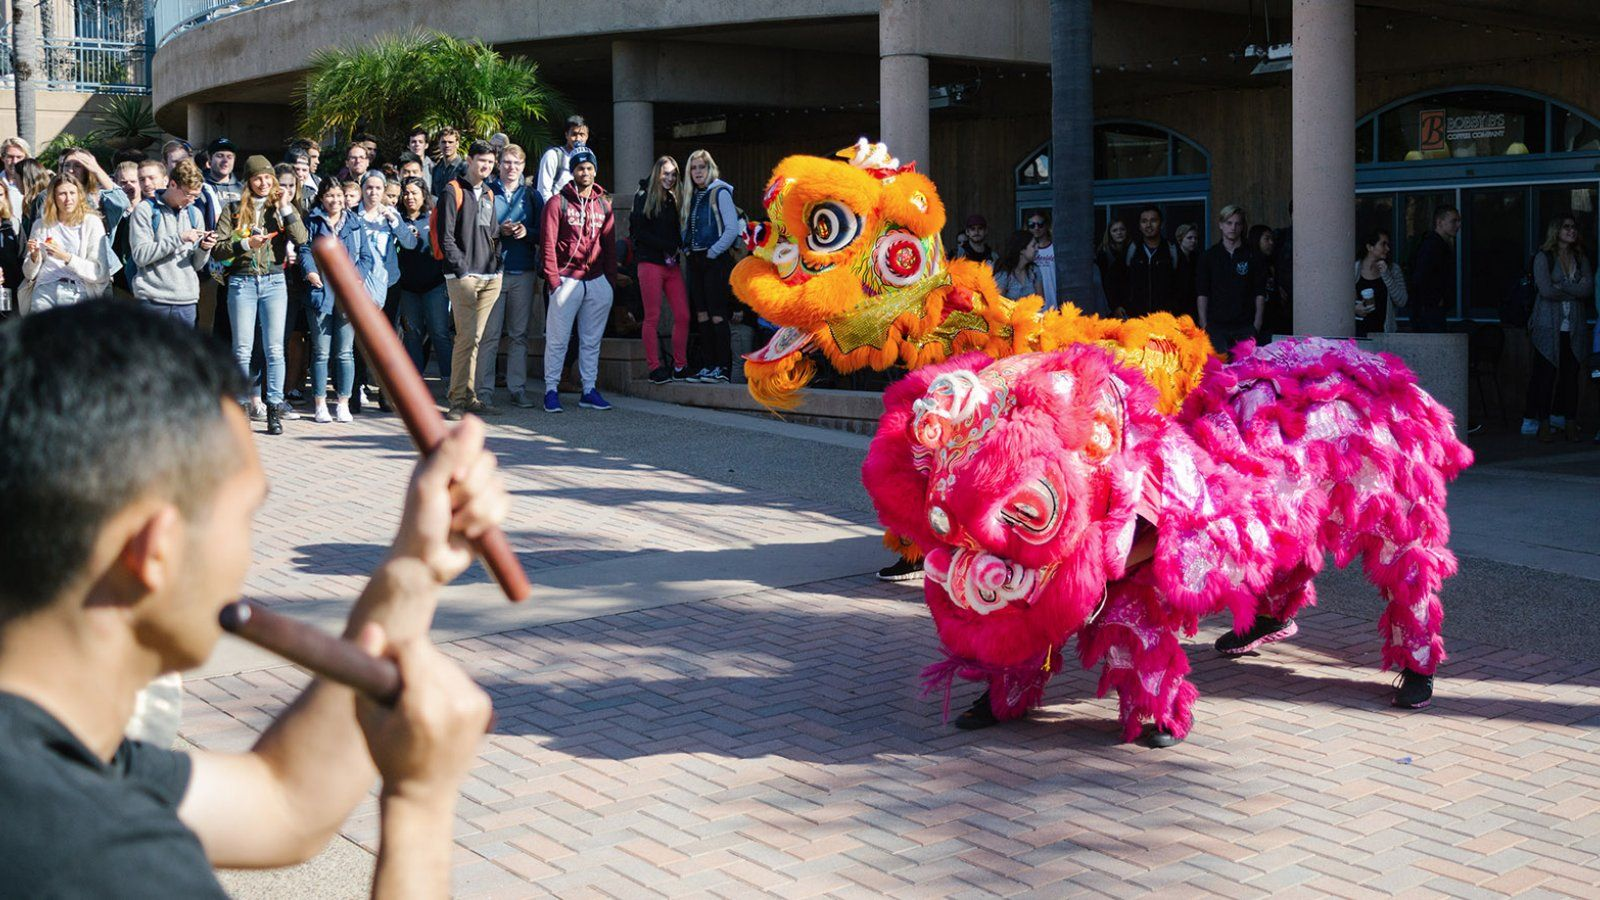 The Lunar New Year celebration begins on the Campus Mall.